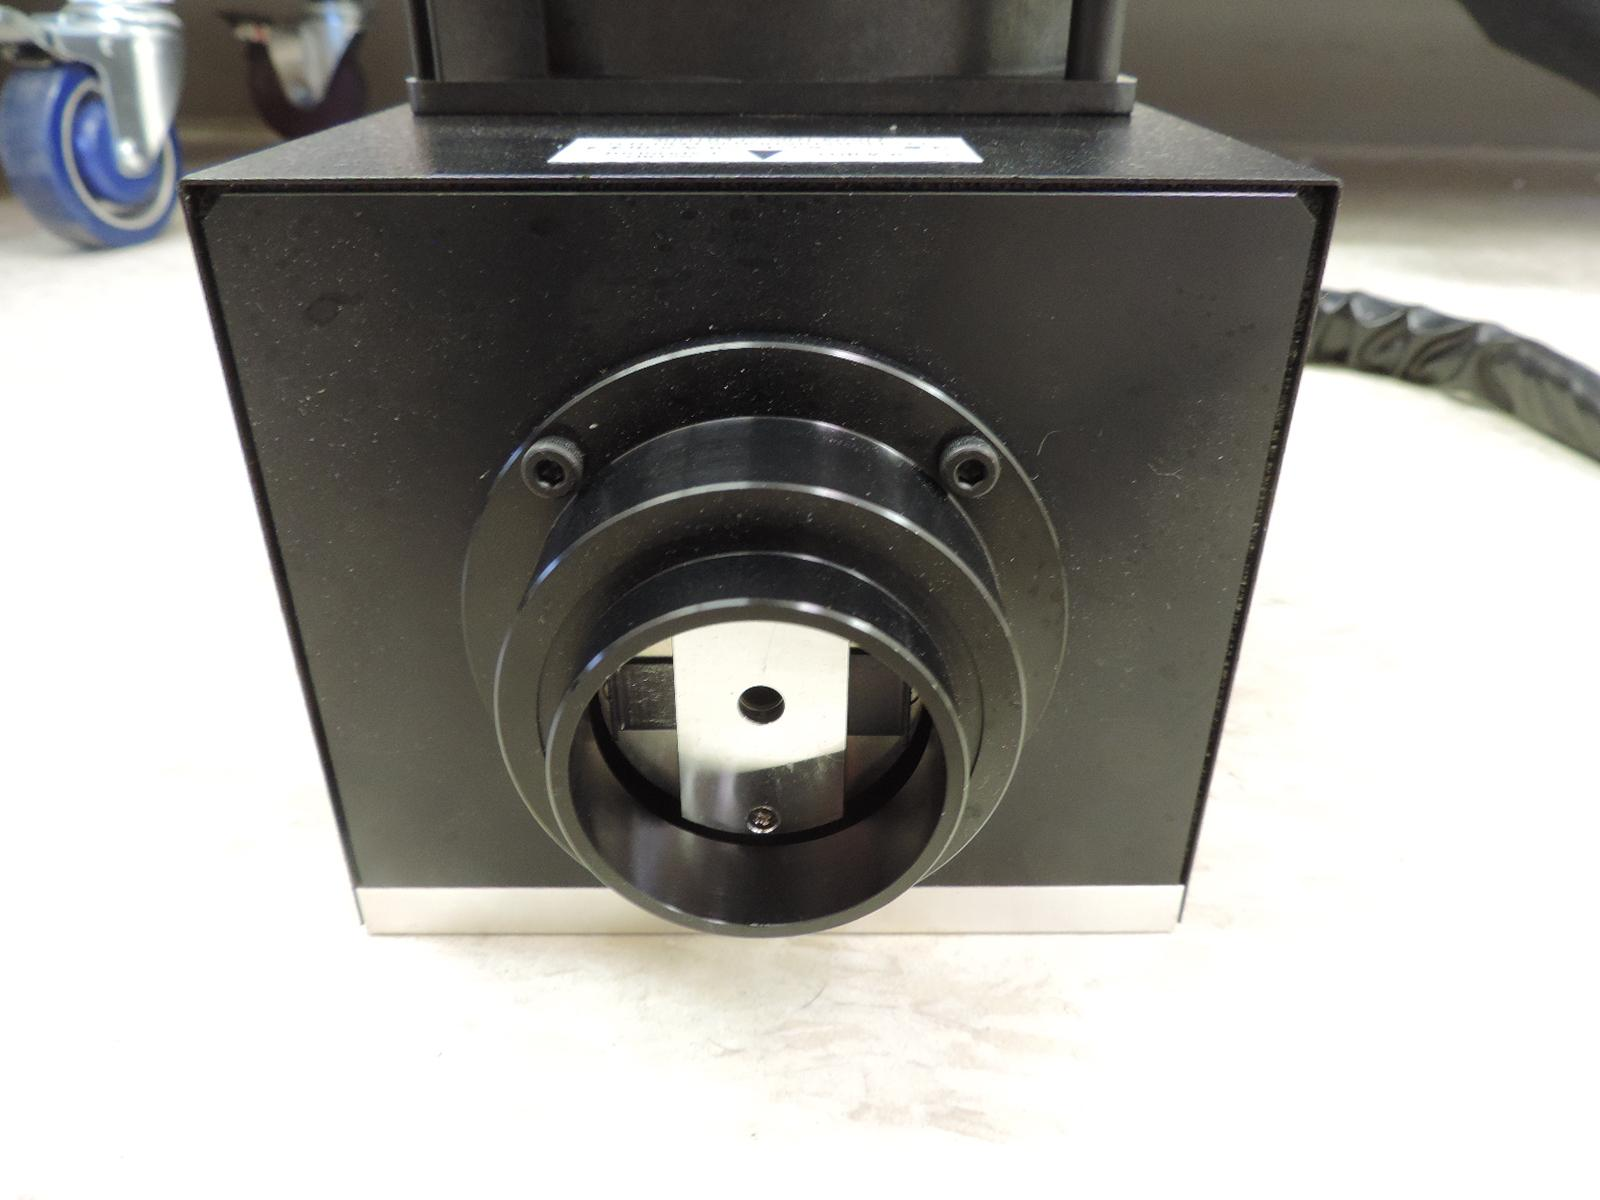 Showa or JDSU lasers, Updated and Improved, new core, lower amperage for ABI